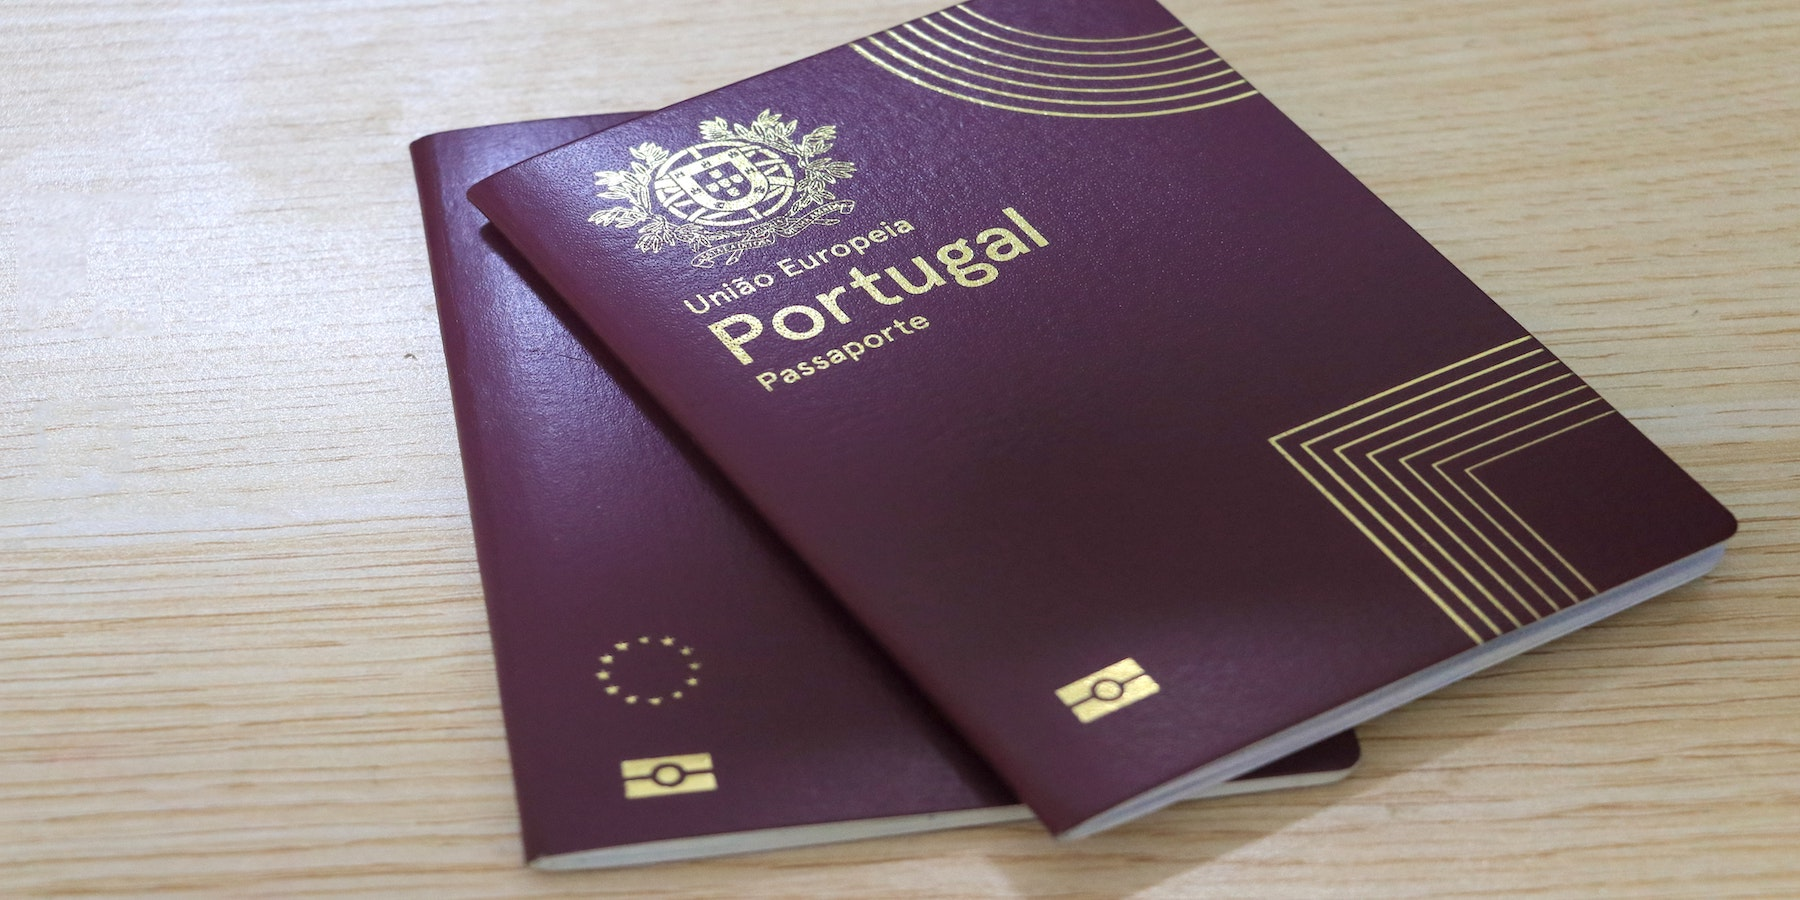 Portuguese National Law - Amendments